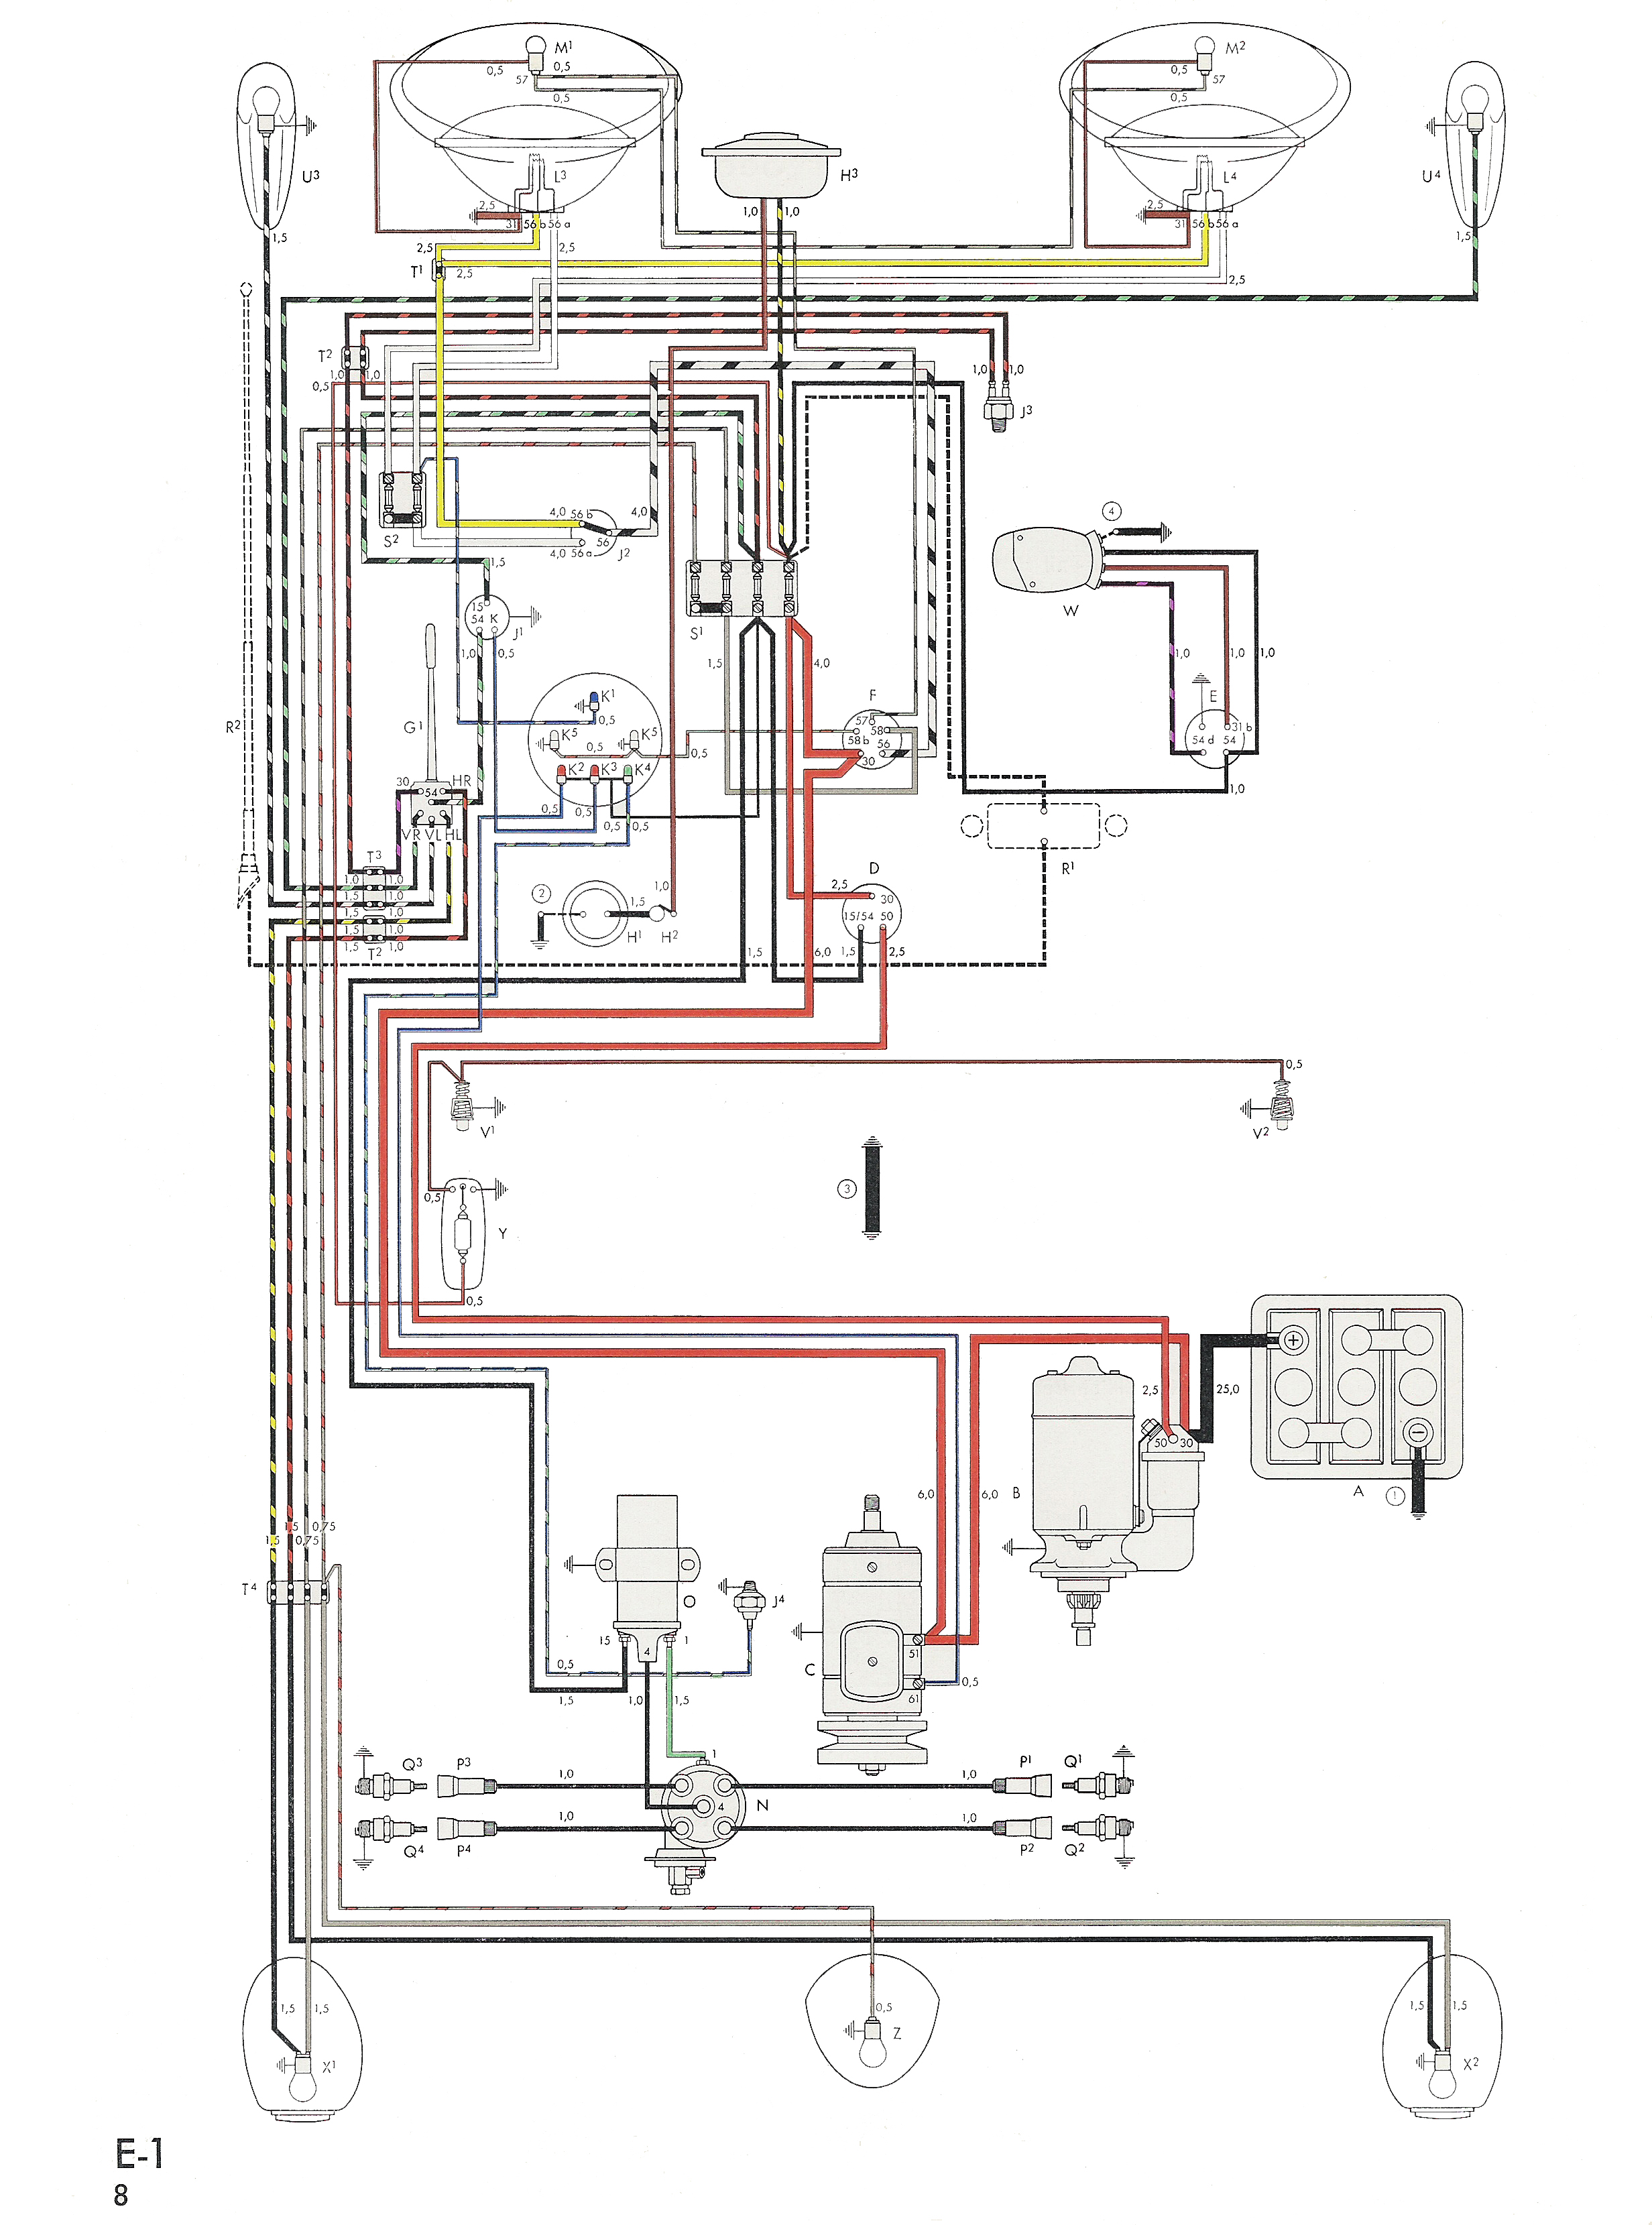 bug_58_USA_300dpi thesamba com type 1 wiring diagrams vw golf 3 electrical wiring diagram at mifinder.co